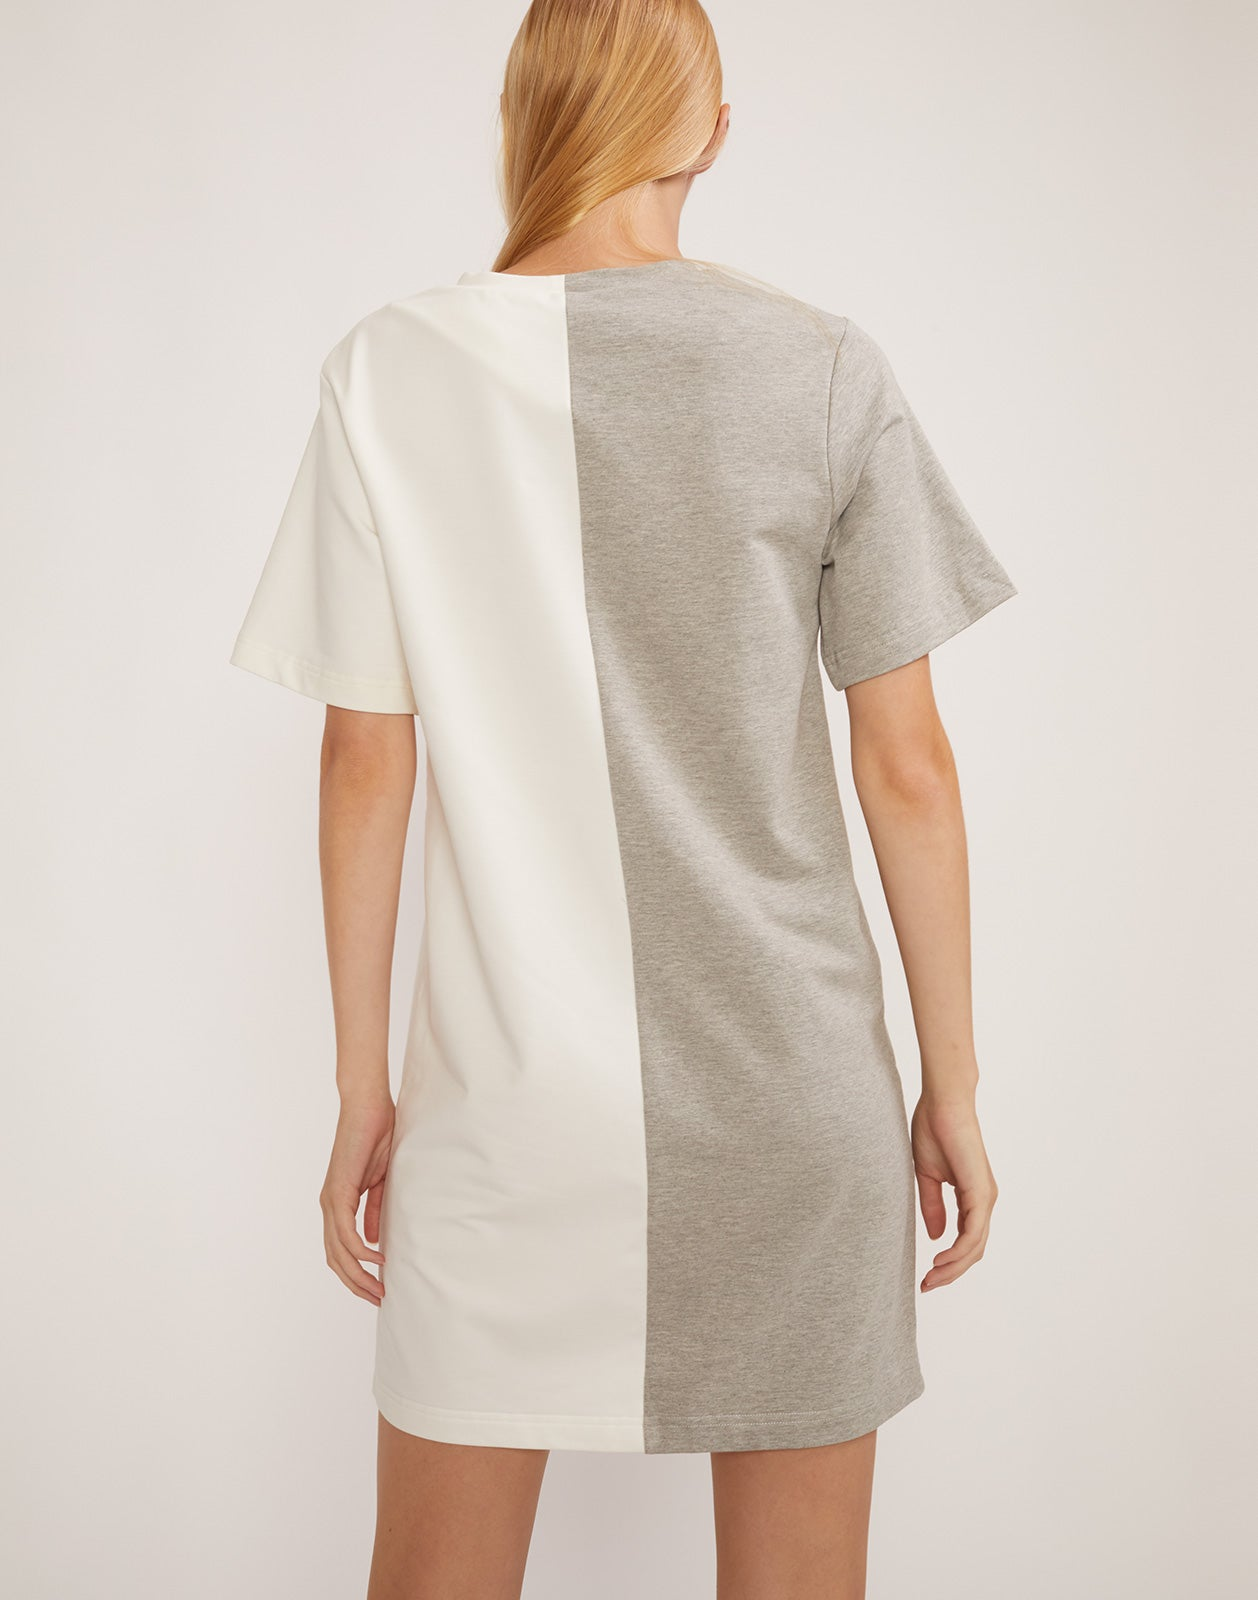 Back view of CaliYork t-shirt dress.